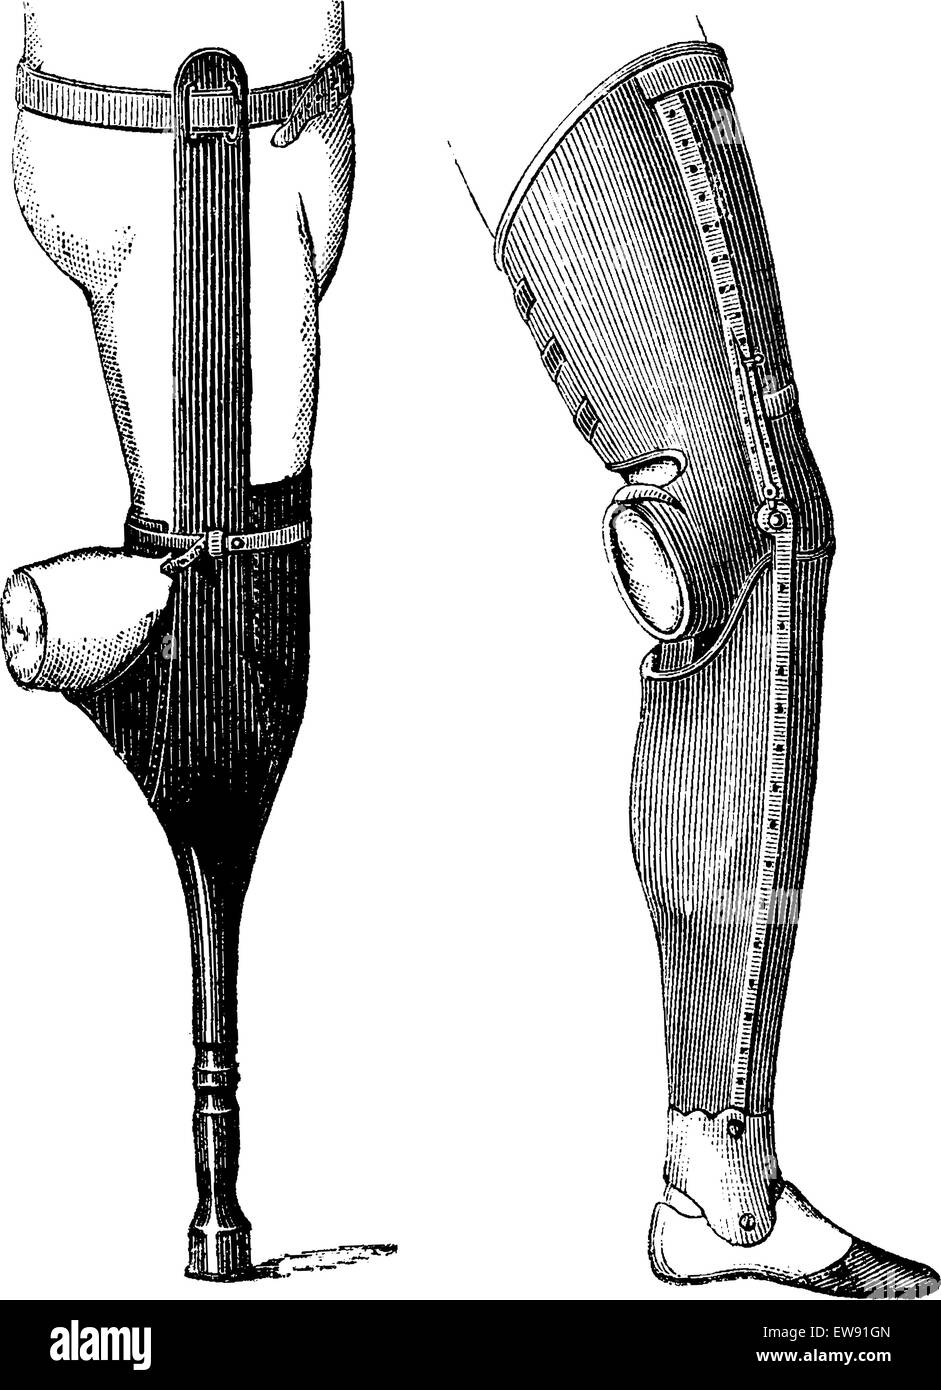 Artificial Legs with Pestle (left) and with Foot (right) for Below-knee Amputation, vintage engraved illustration. - Stock Vector